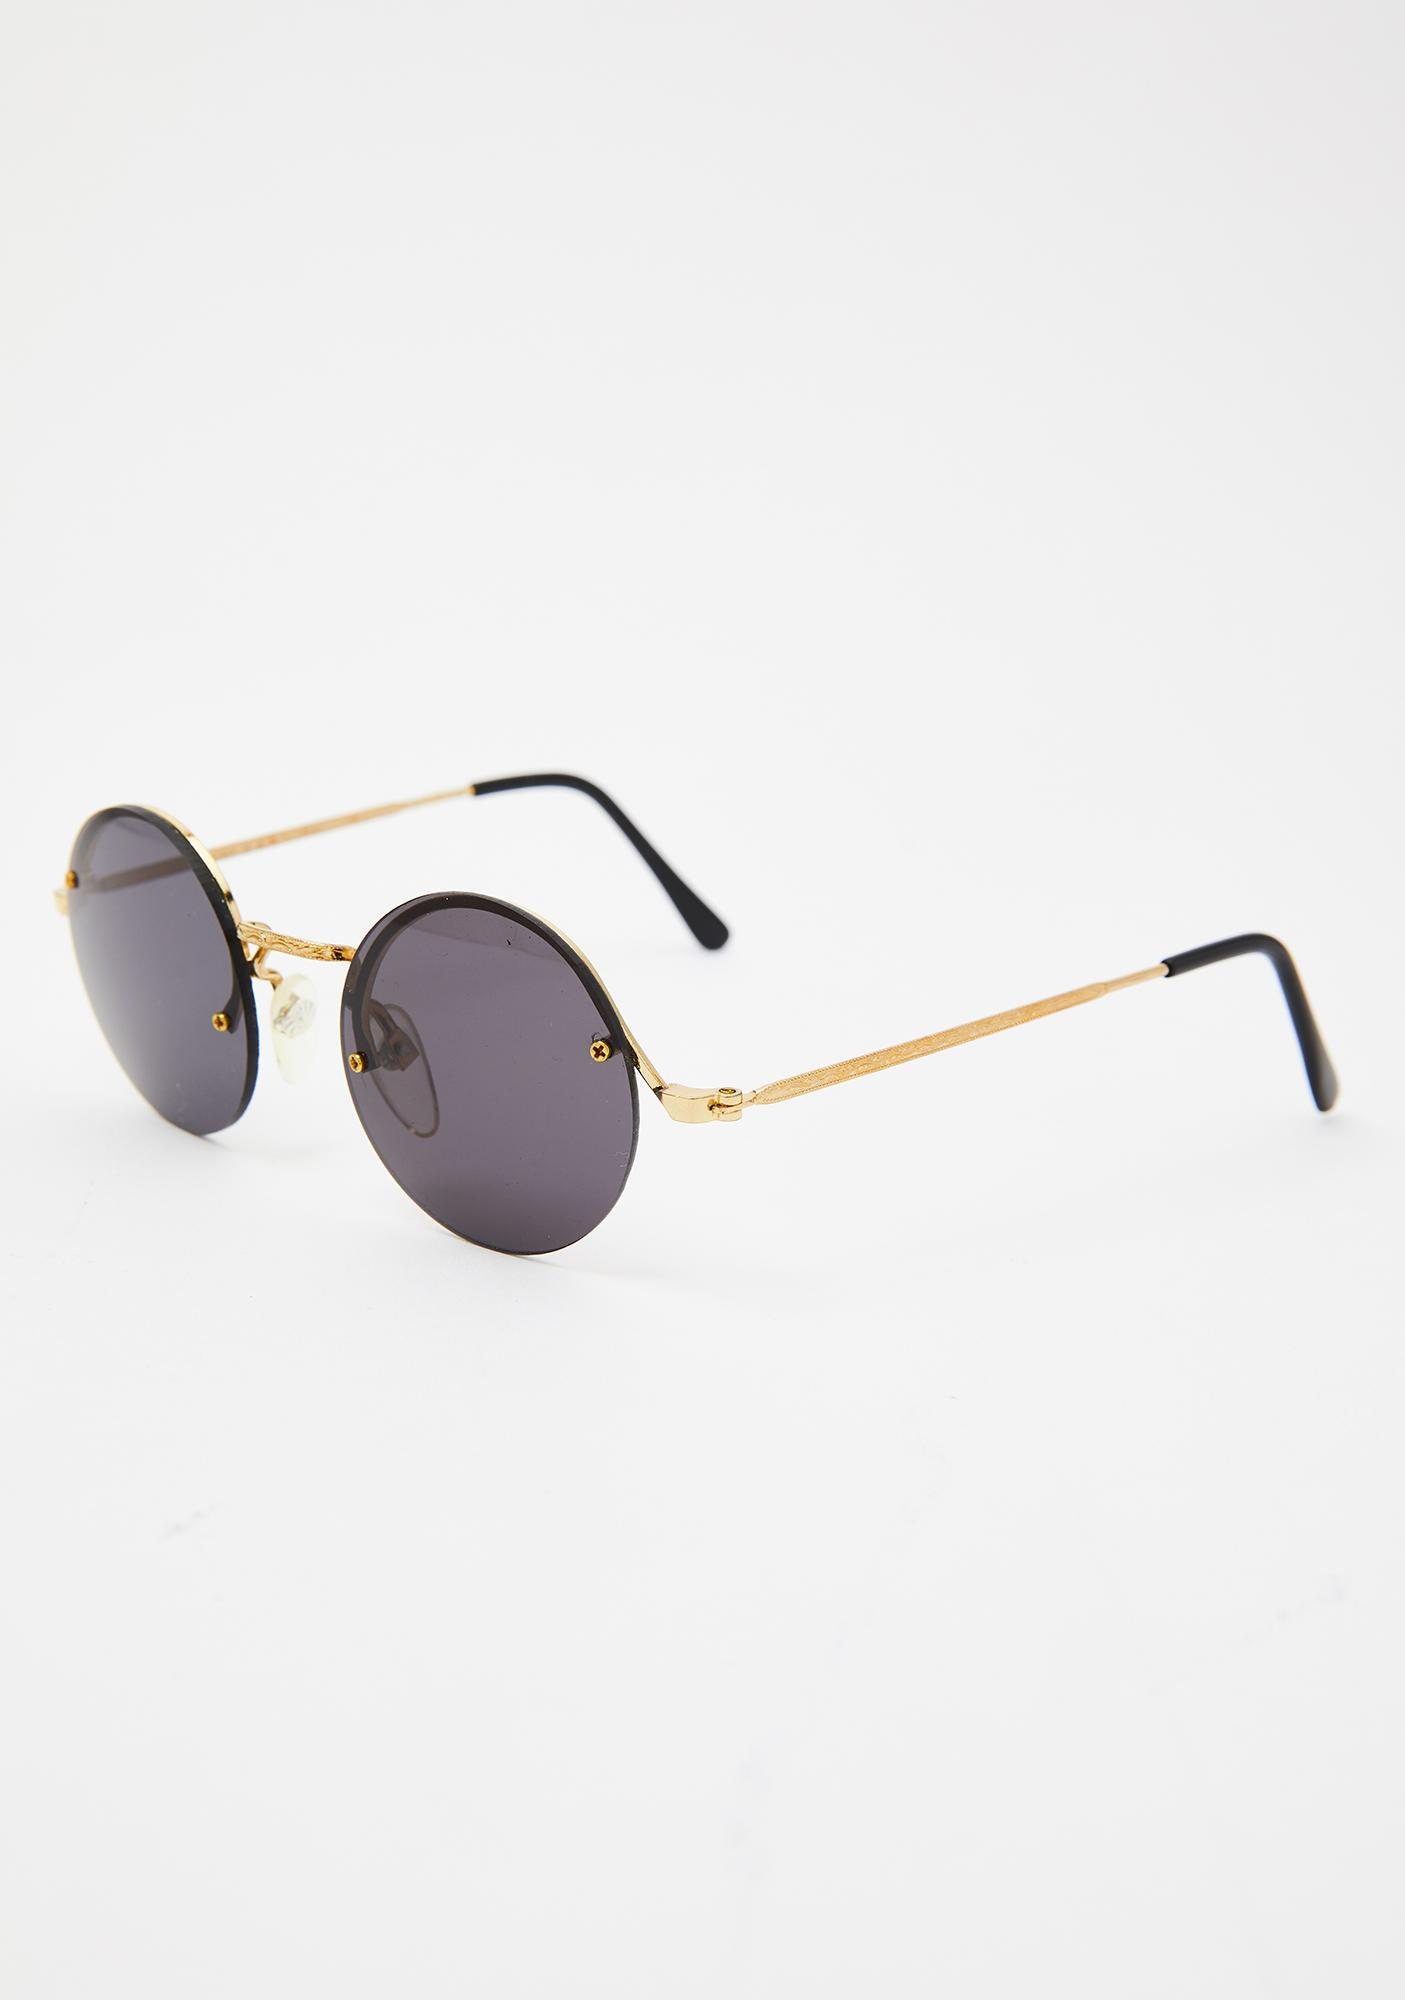 Replay Vintage Sunglasses Smoke Rounders Sunglasses